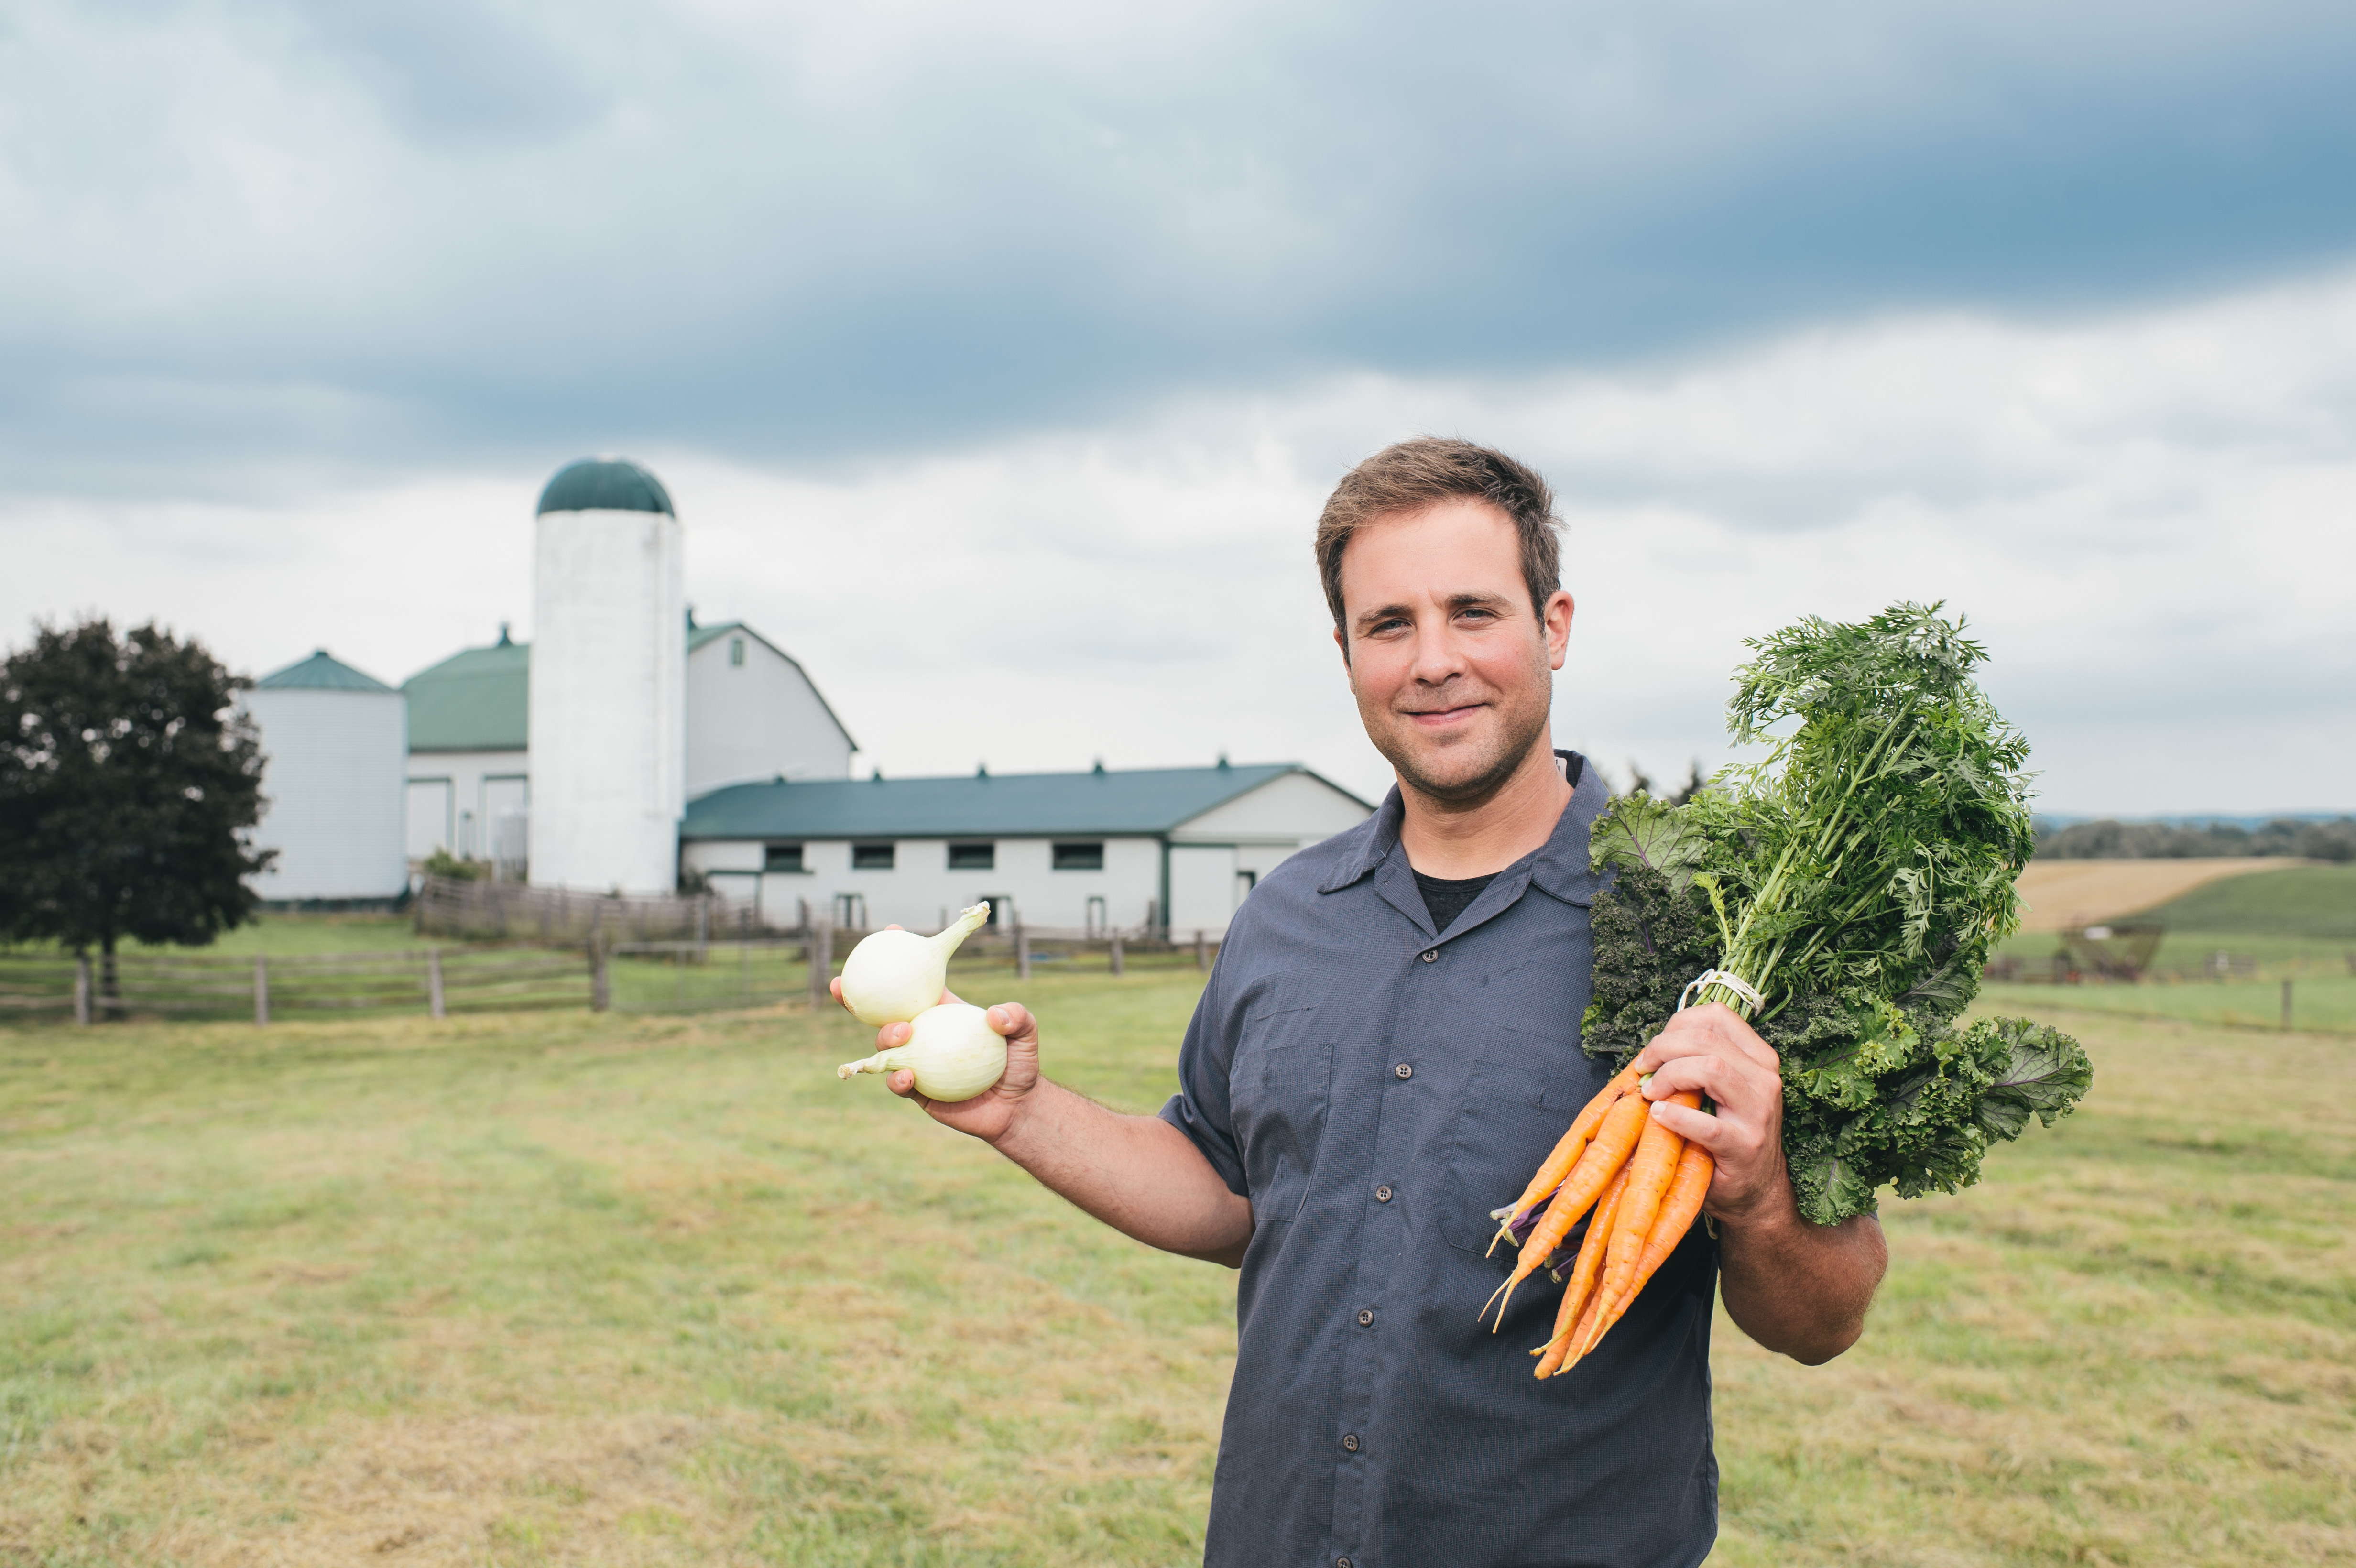 This is a photo of farmer Peter Riga. He is facing the camera and smiling, holding a bunch of carrots in his left hand and onions in his right. He is wearing a button down blue-grey shirt. There is a large, white barn with a green roof in the background.